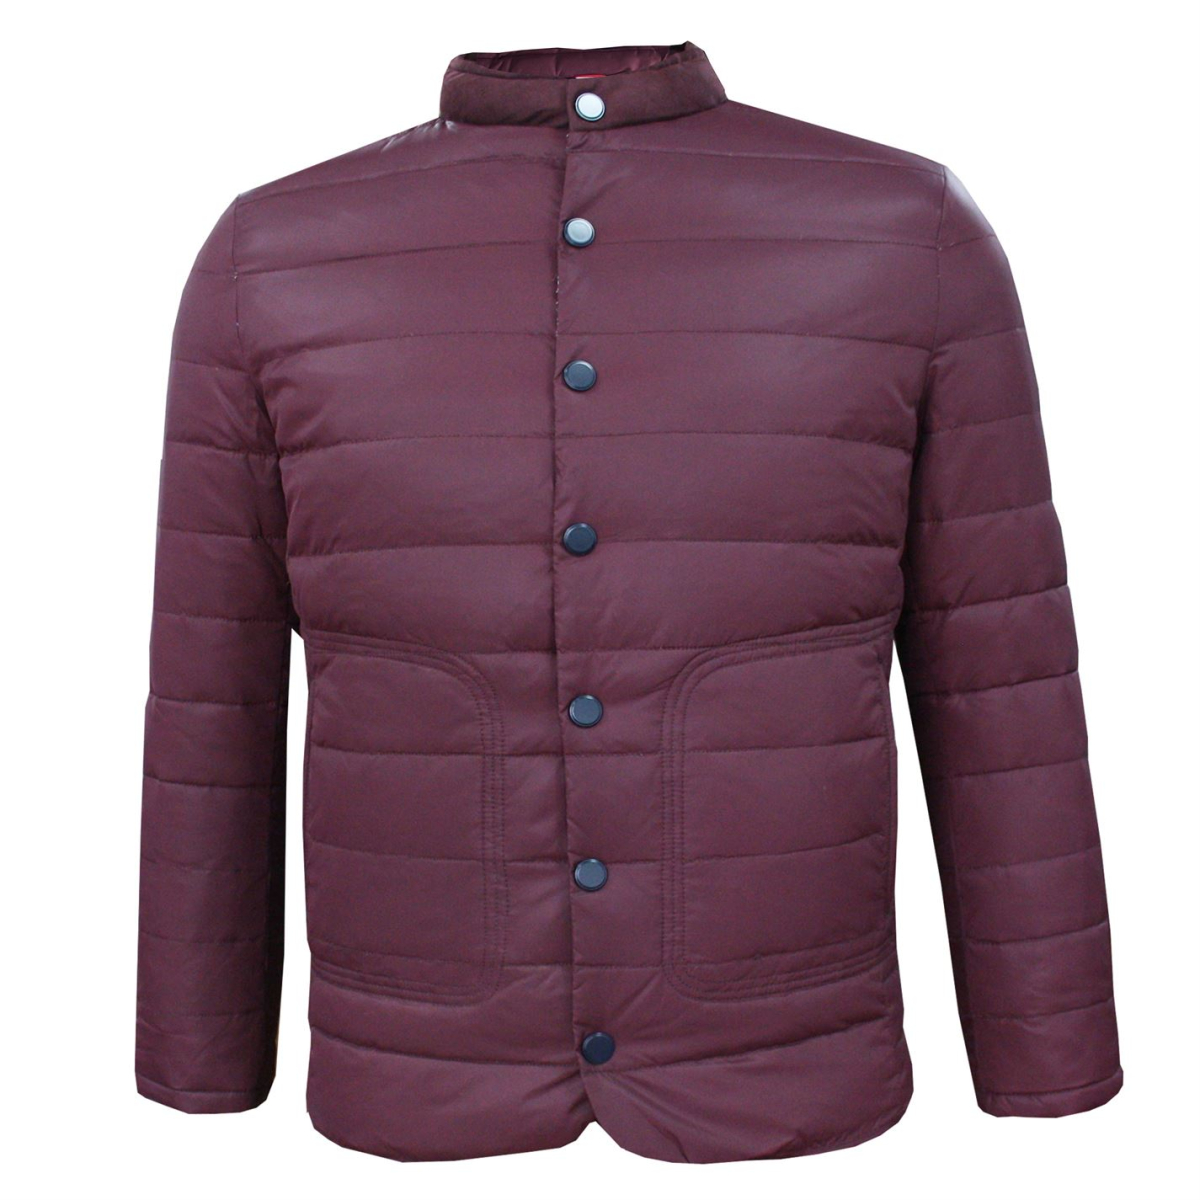 Lee Cooper Essential Down Herbst Jacke Herren Burgundy